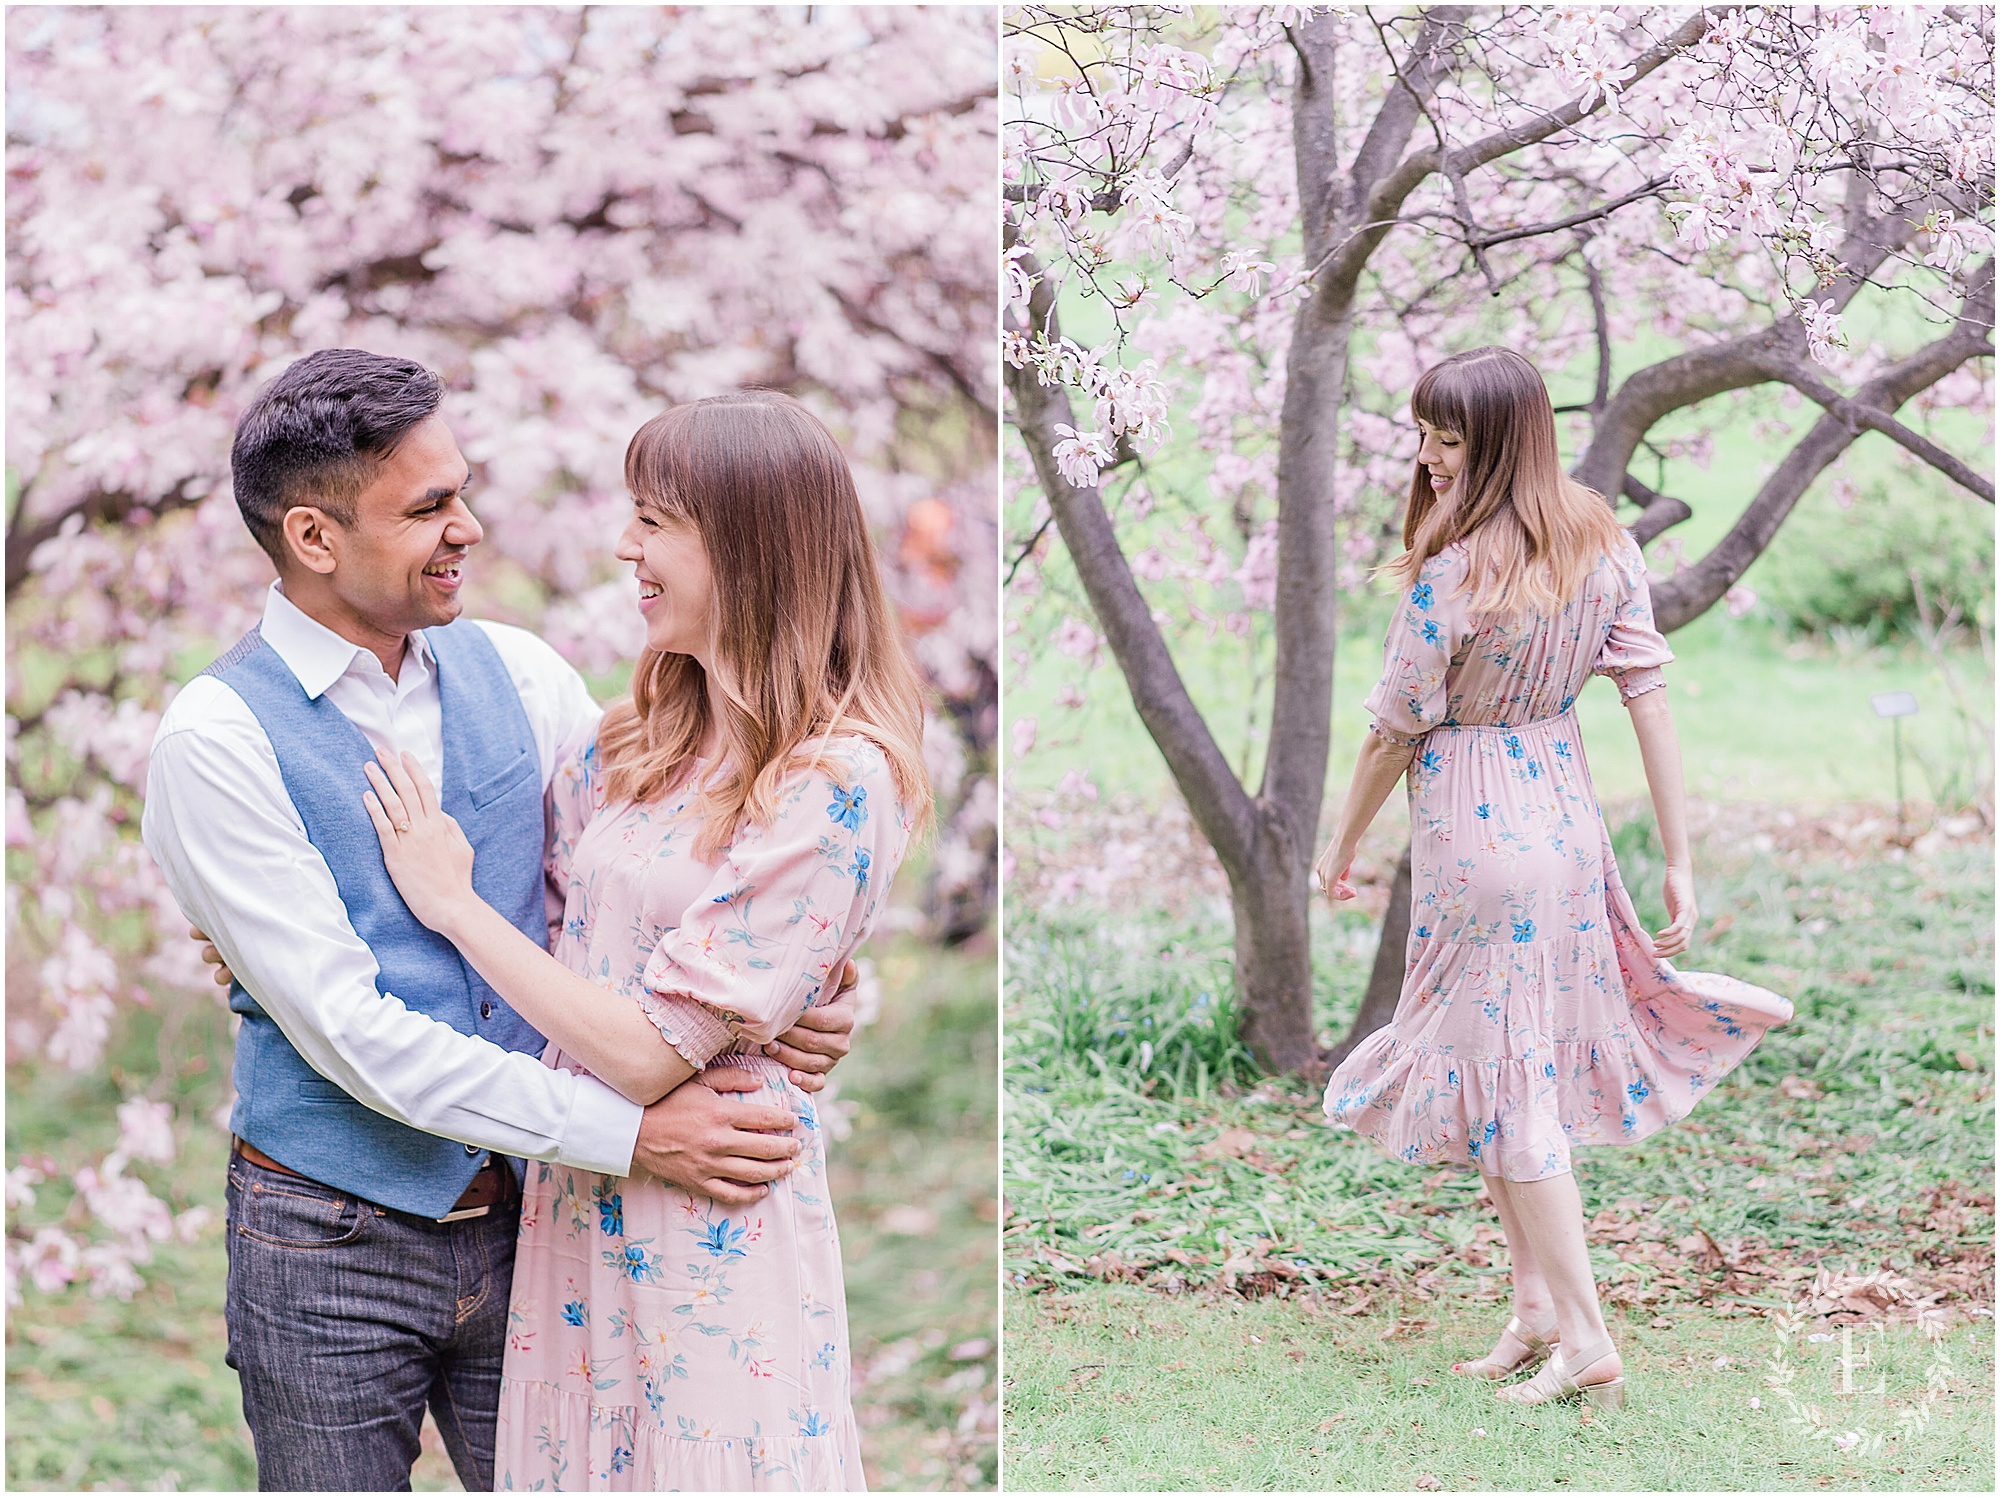 122_Cait_and_Saaqib_Engagement_at_the_Museum_of_Nature_and_Ornamental_Gardens___Photography_by_Emma.jpg